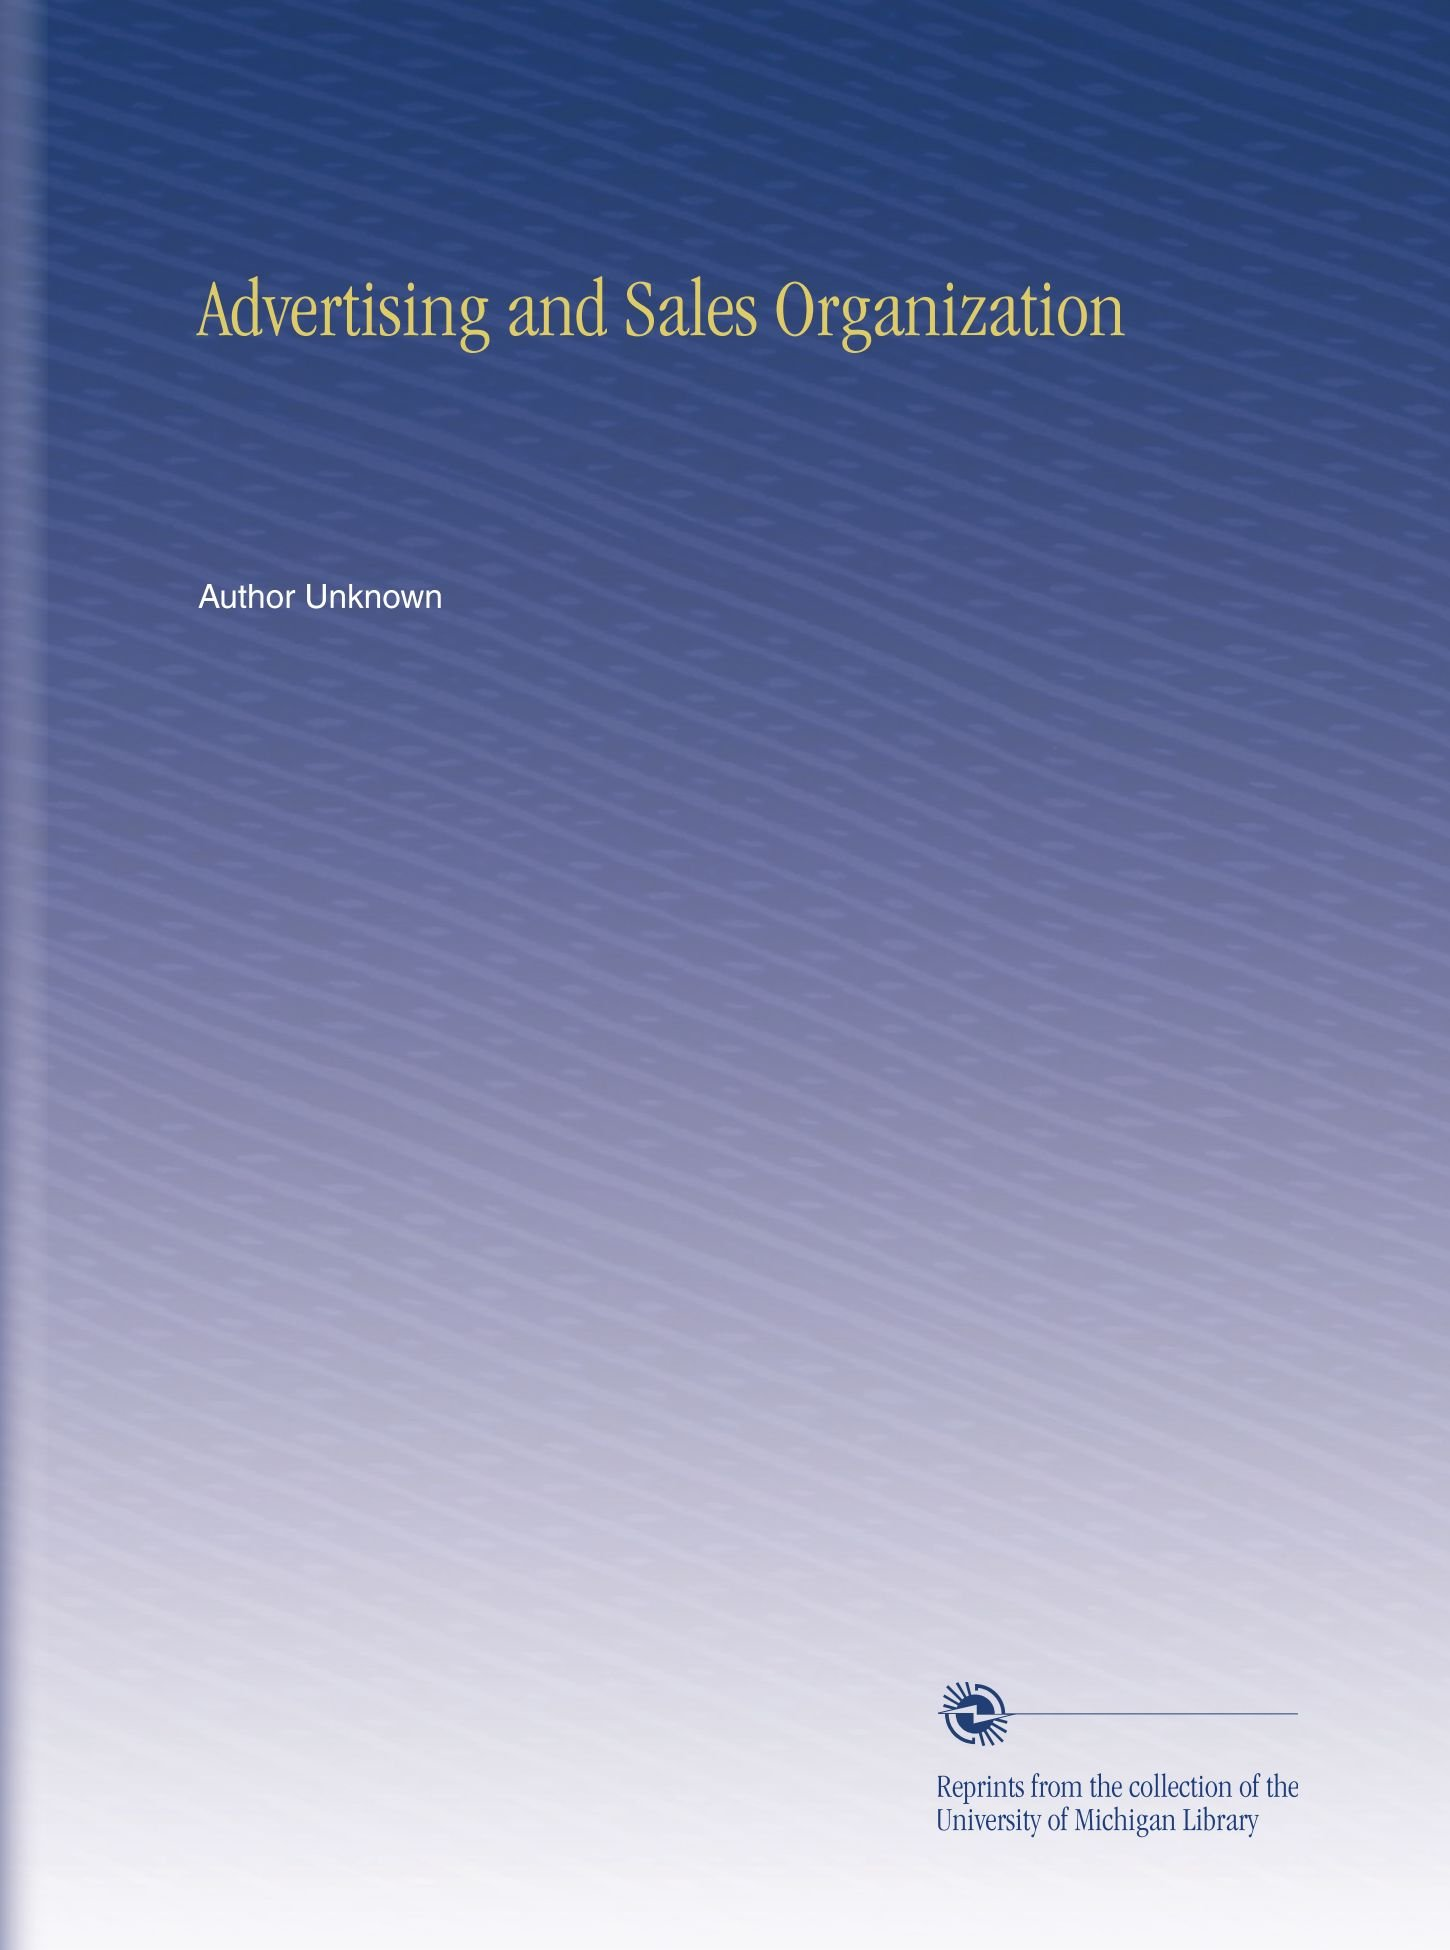 Advertising and Sales Organization